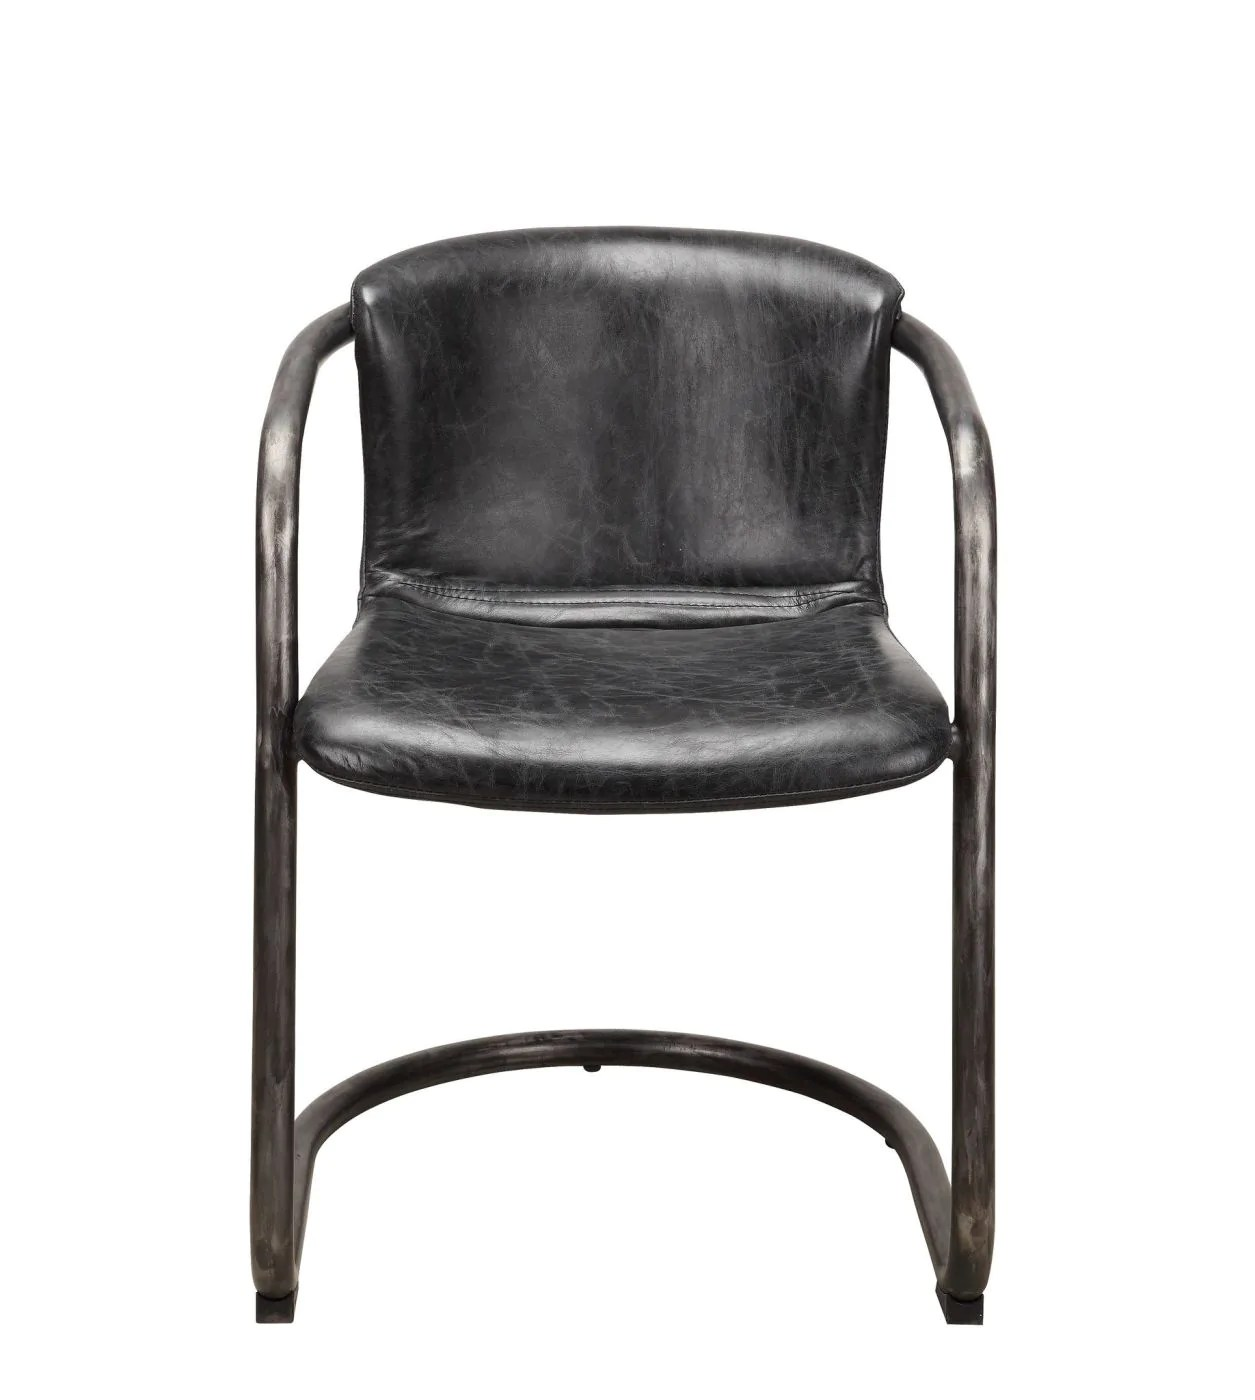 Best Price On Moe S Home Collection Pk 1059 02 Freeman Modern Industrial Dining Chair Antique Black Distressed Leather Set Of 2 Only 1 024 00 At Contemporary Furniture Warehouse